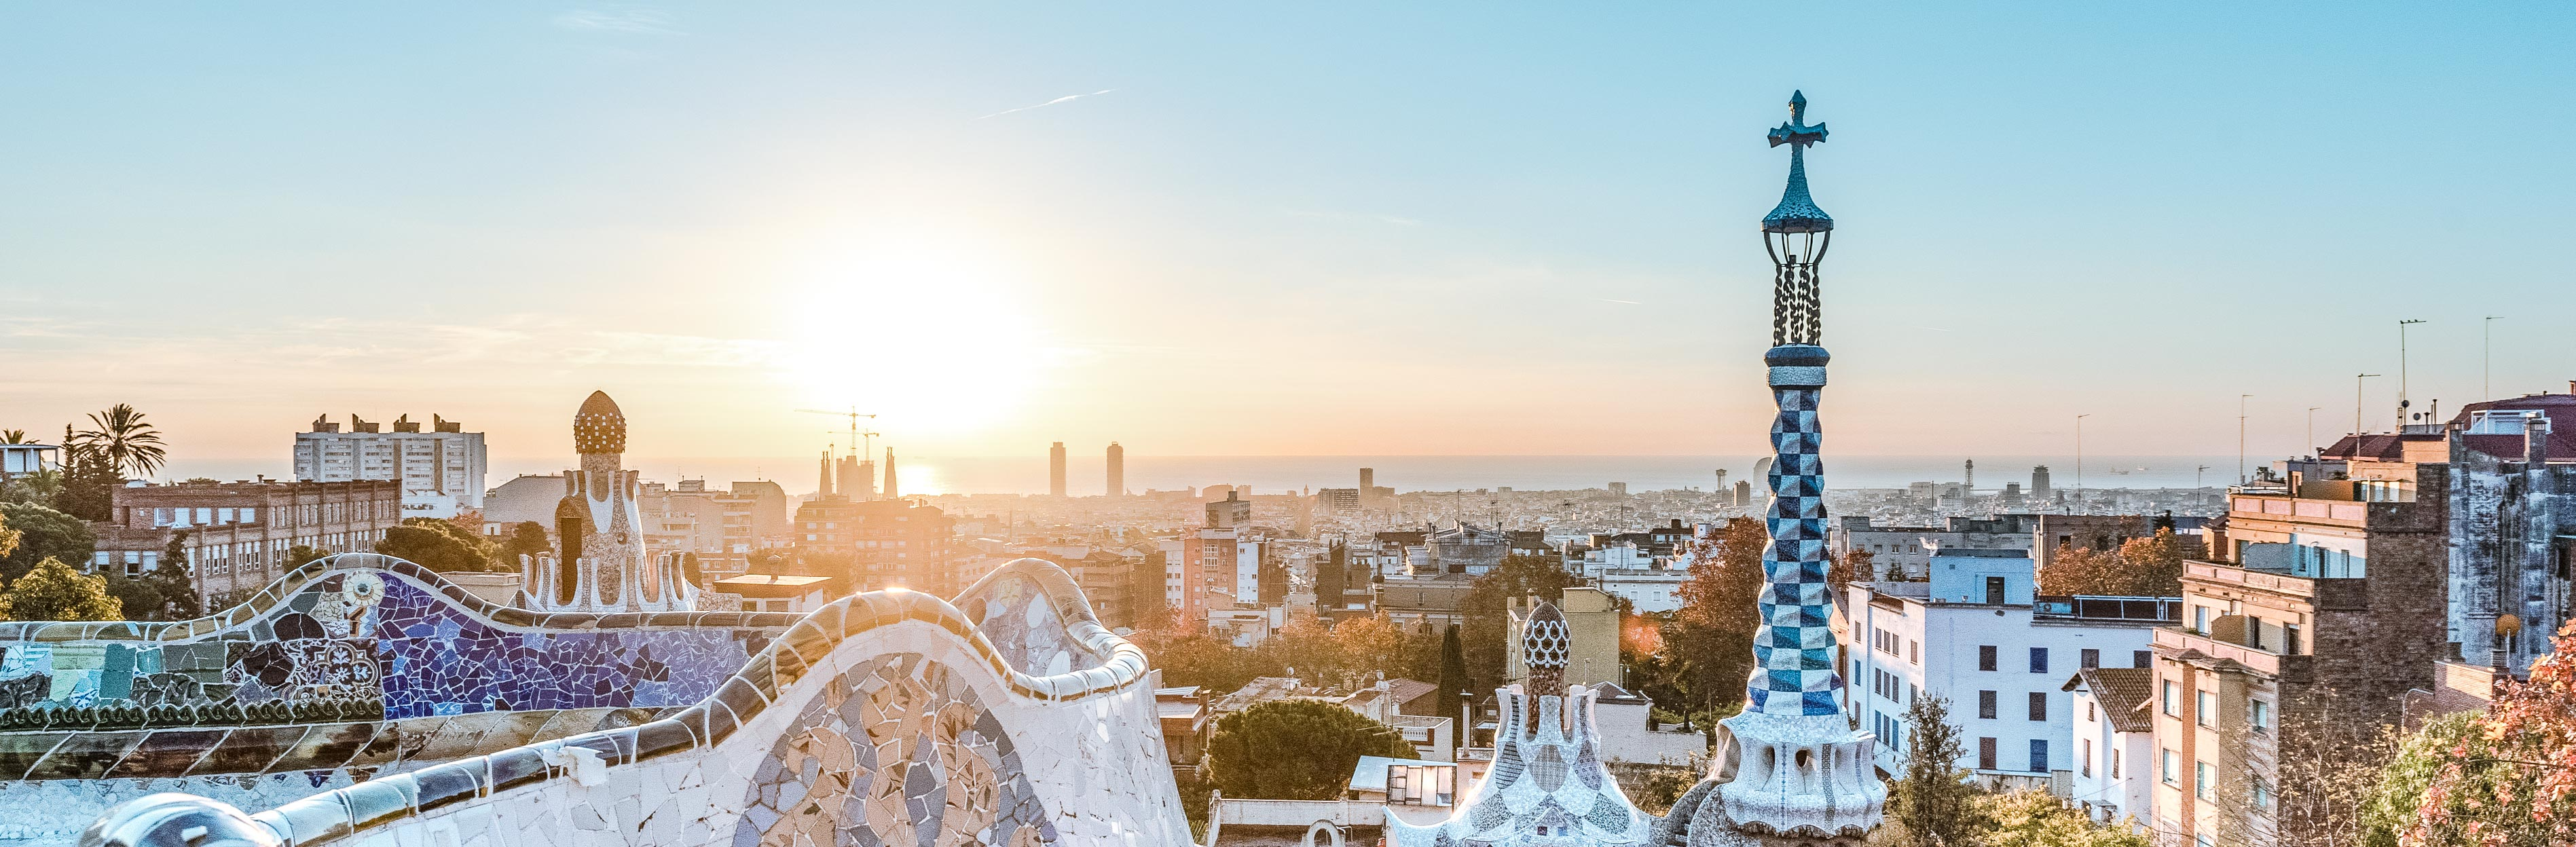 sunrise view of park guell shot by barcelona travel blog company muve travel